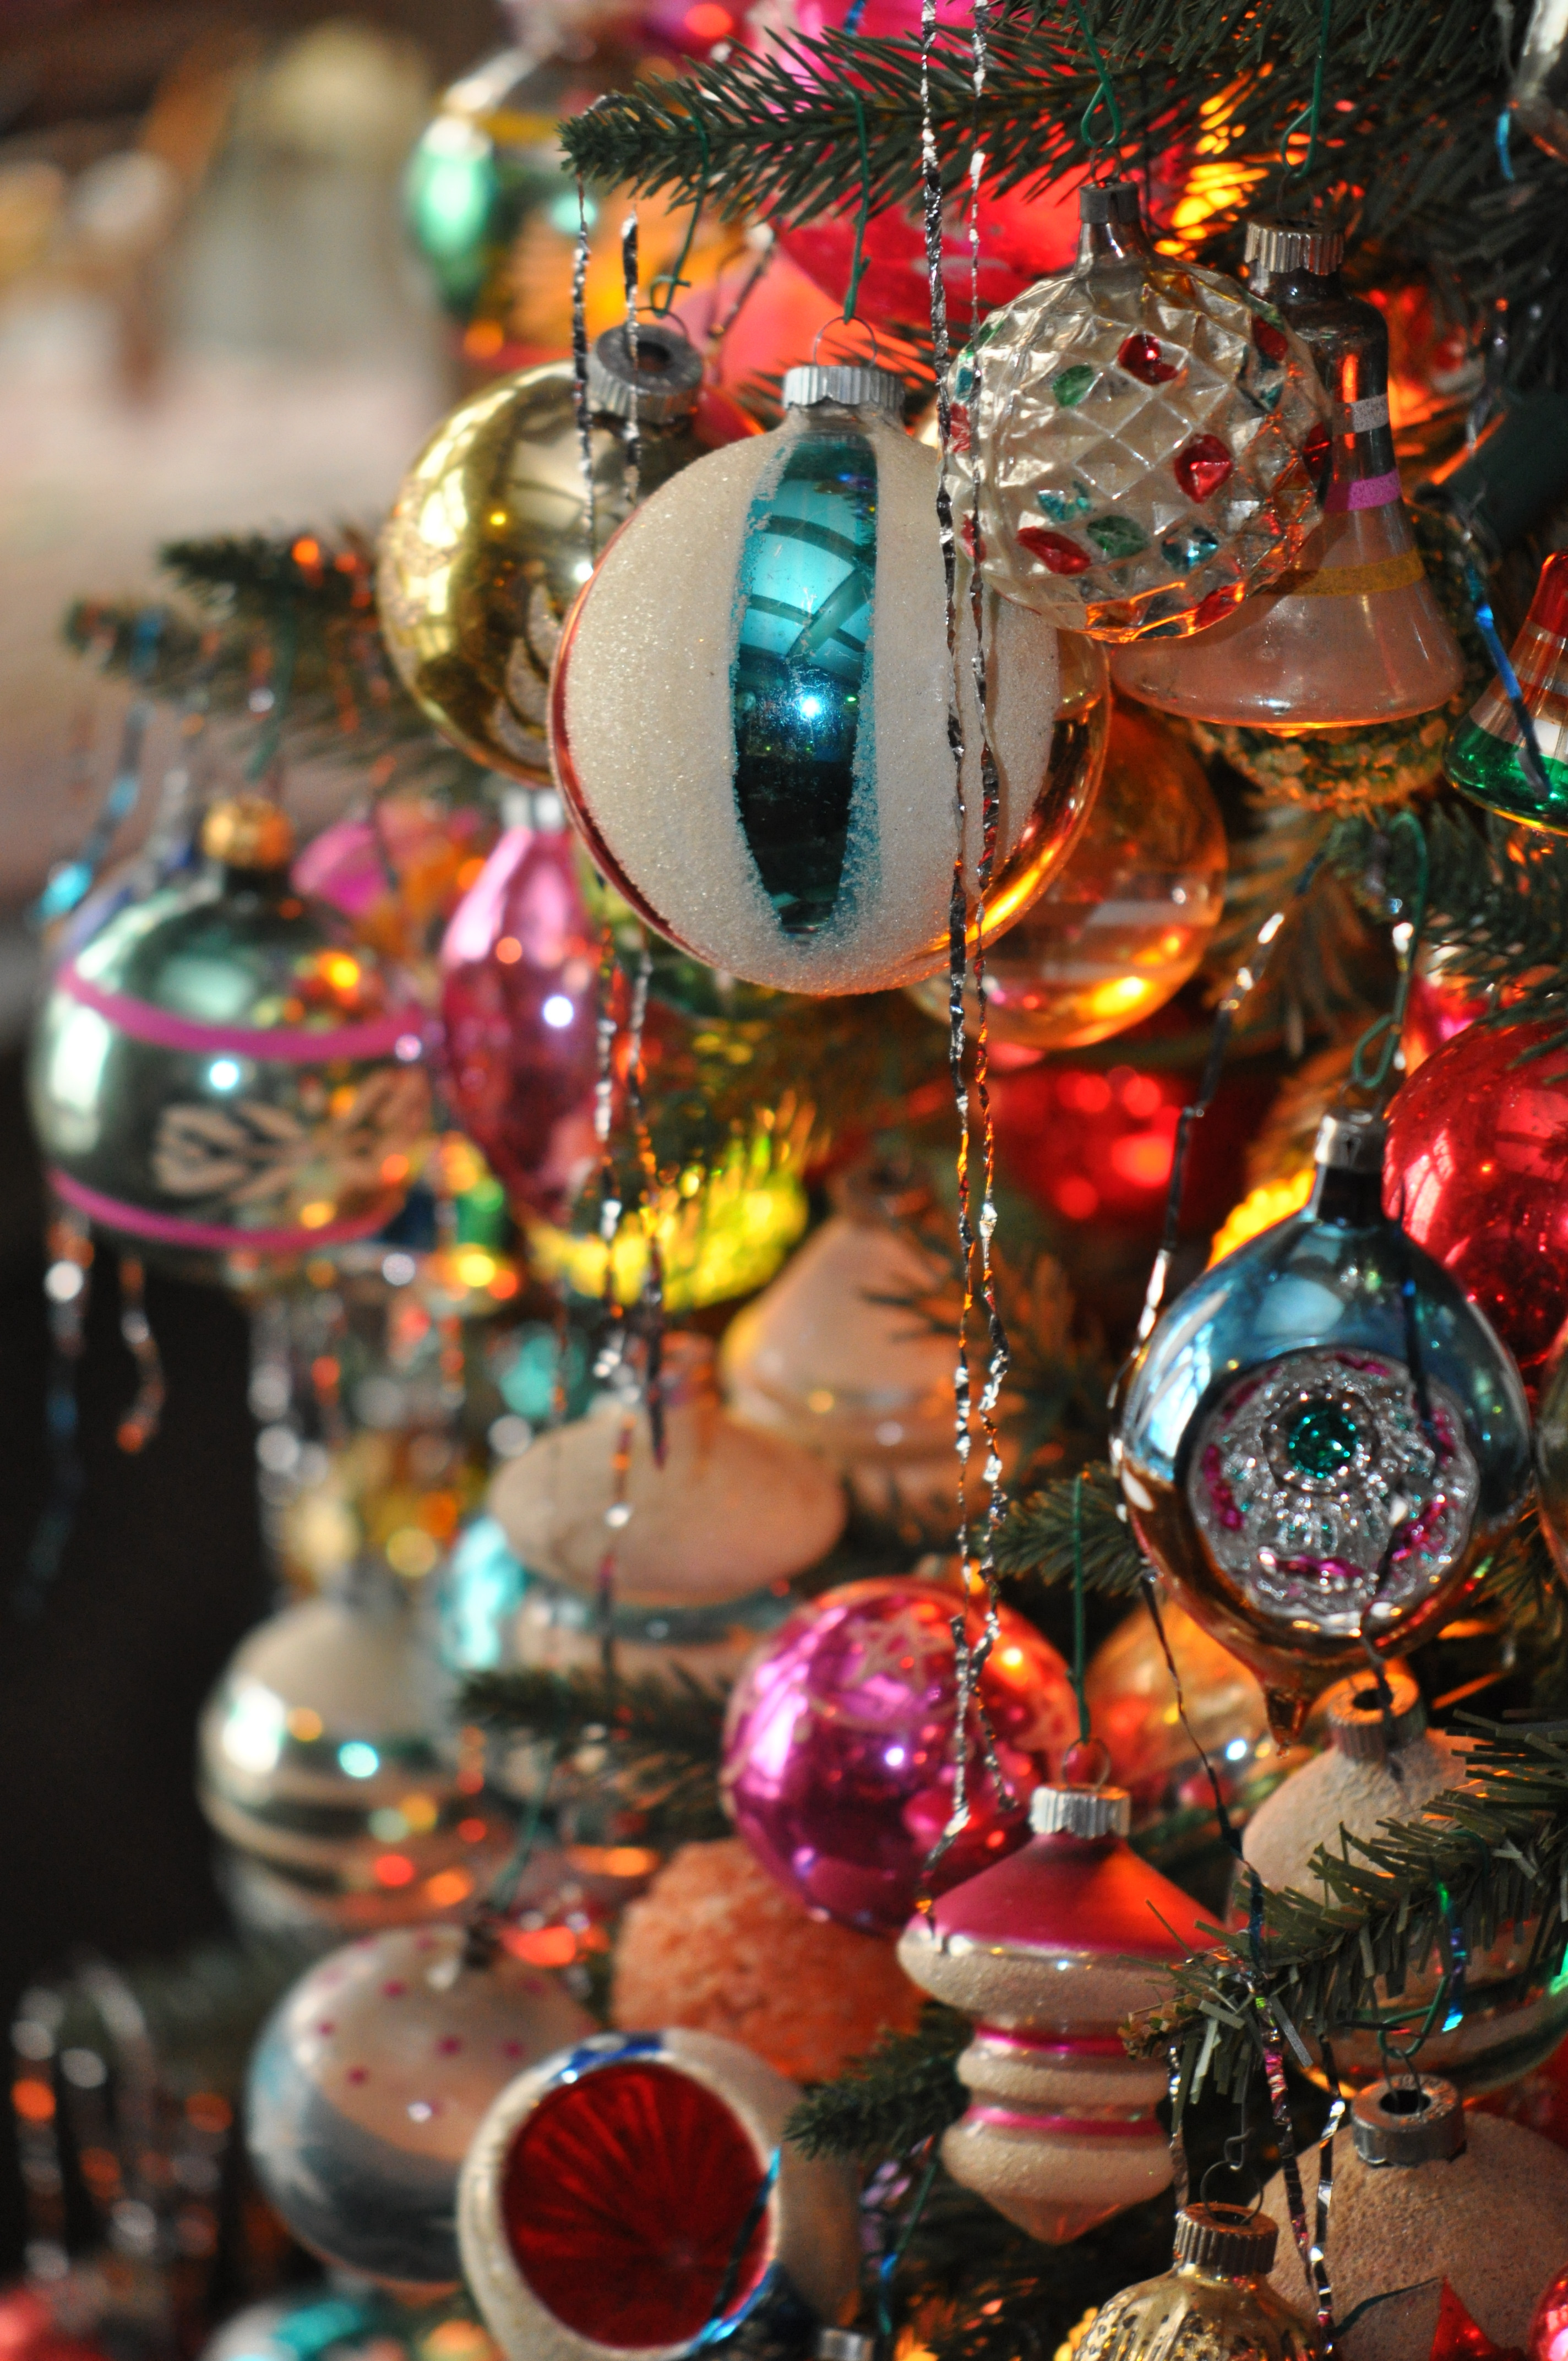 Christmas ornaments Awesome Christmas Shiny Brite ornaments Ideas Of Incredible 48 Images Christmas ornaments